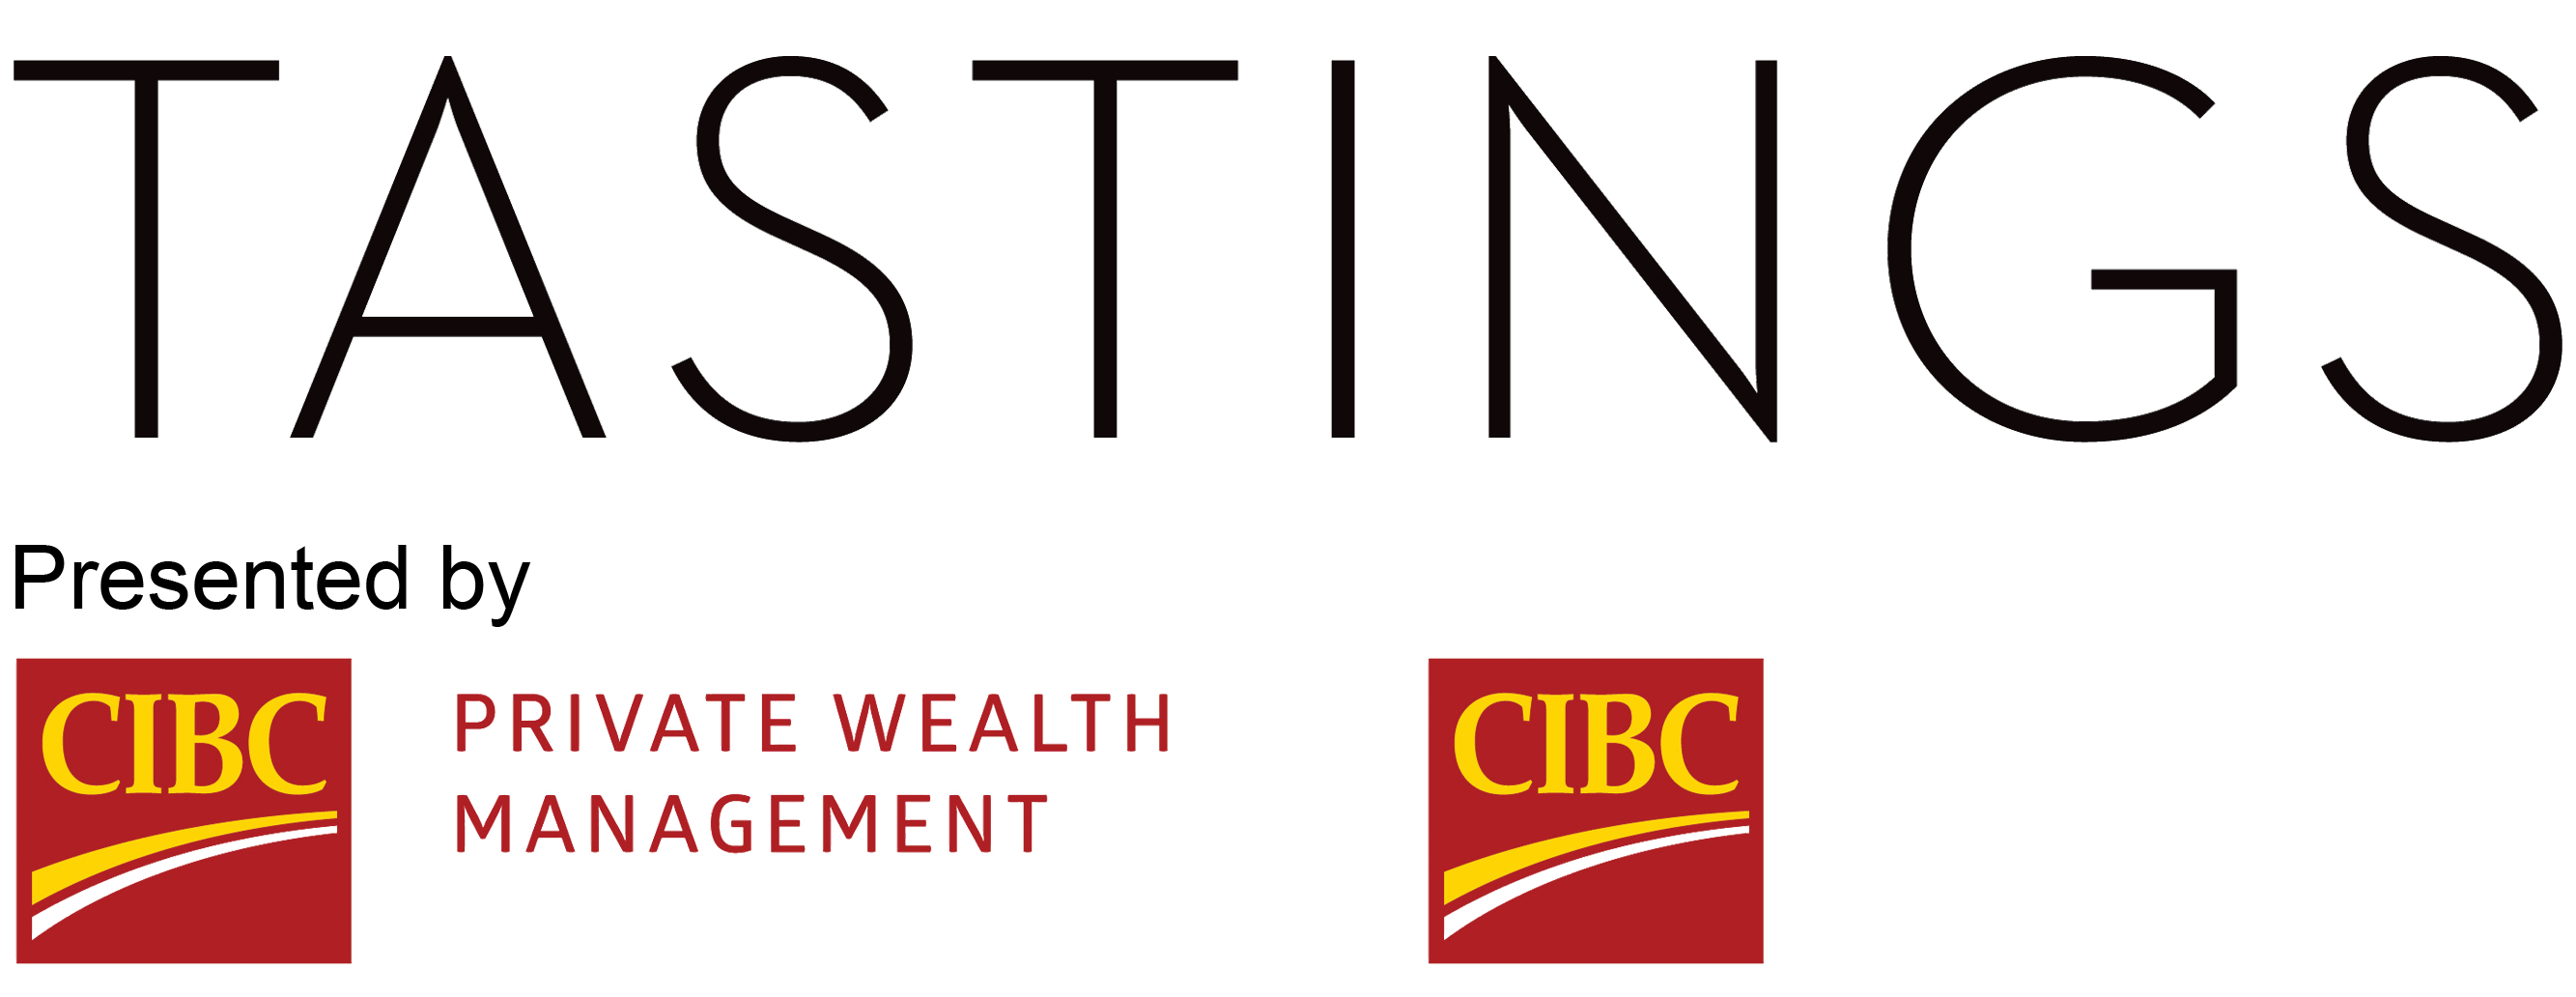 Tastings Presented by CIBC PWM and CIBC.png